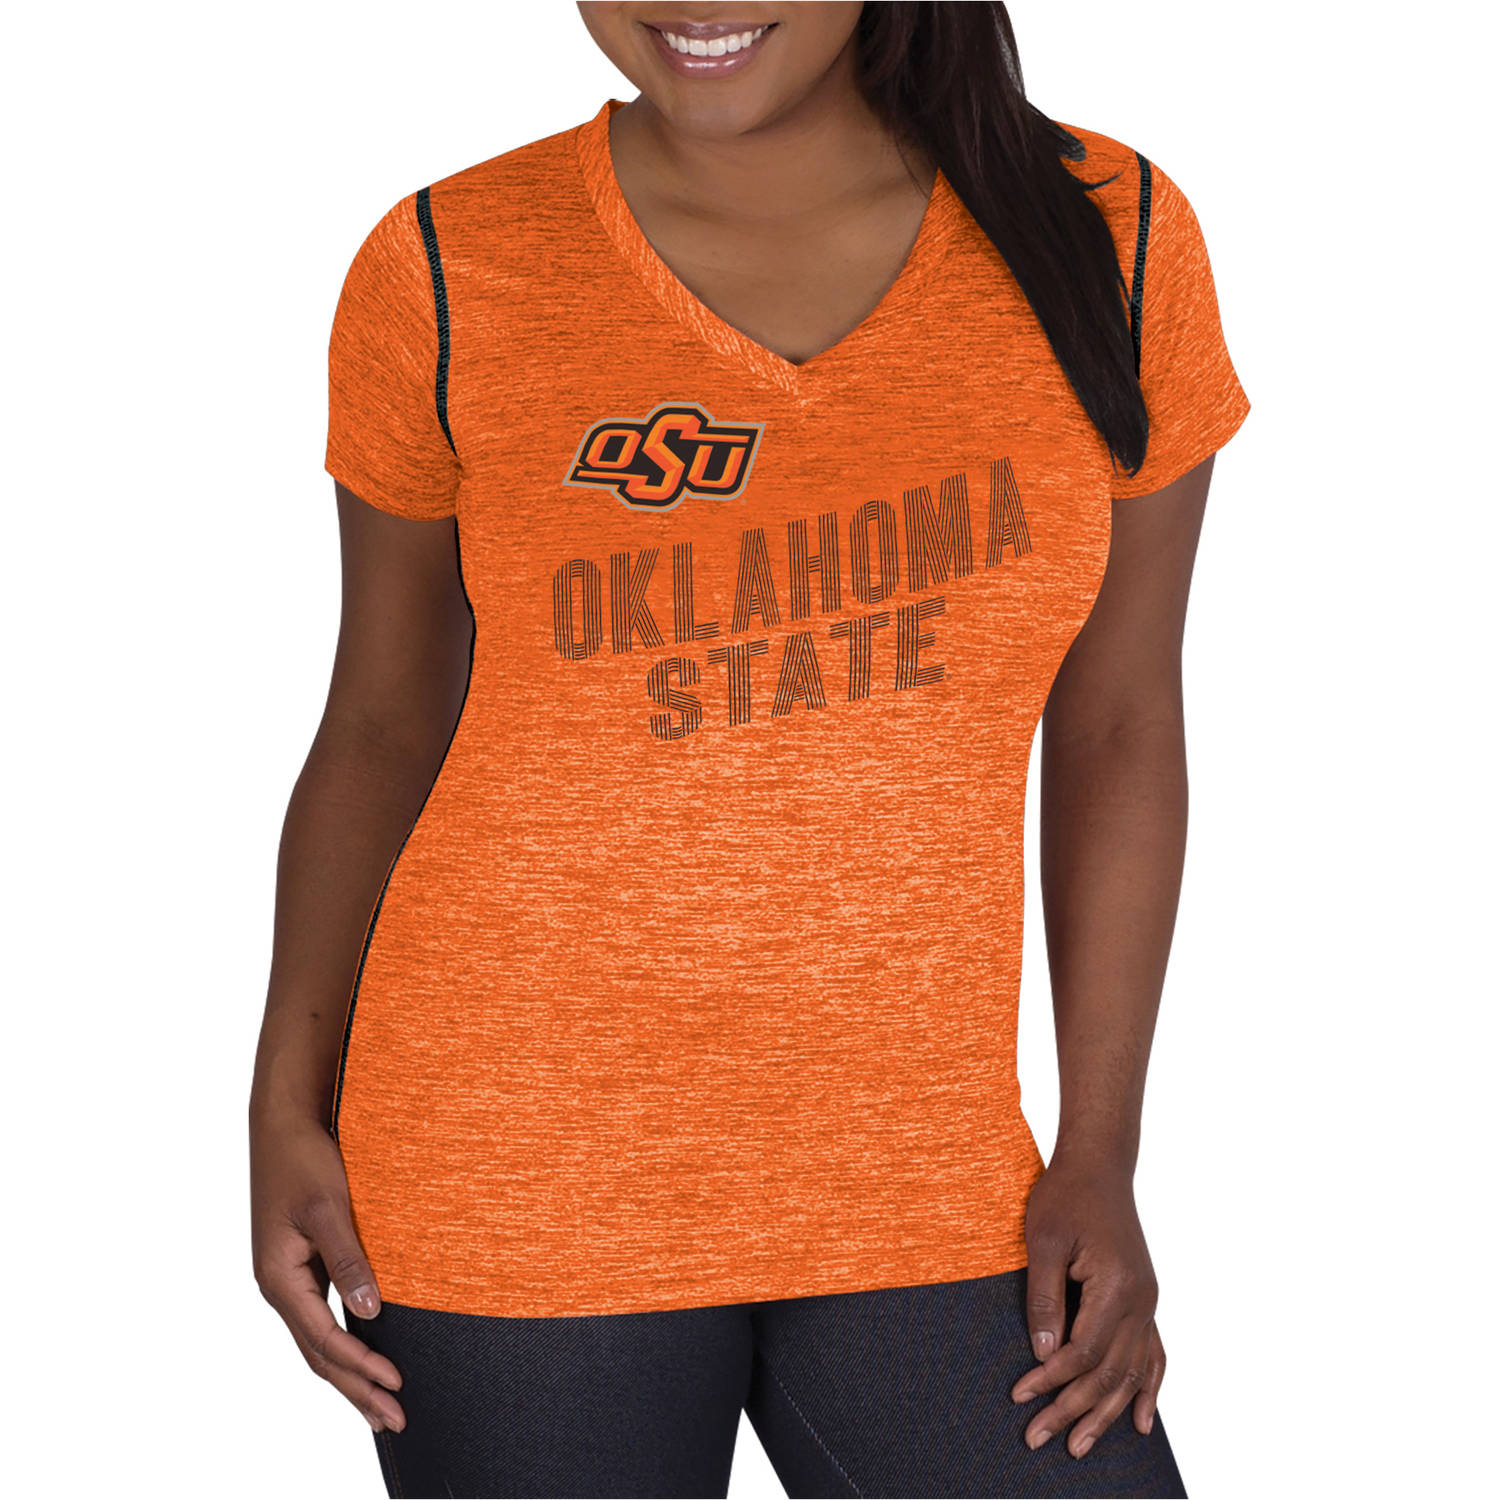 NCAA Oklahoma State Cowboys Ladies Classic-Fit Synthetic V-Neck Tee